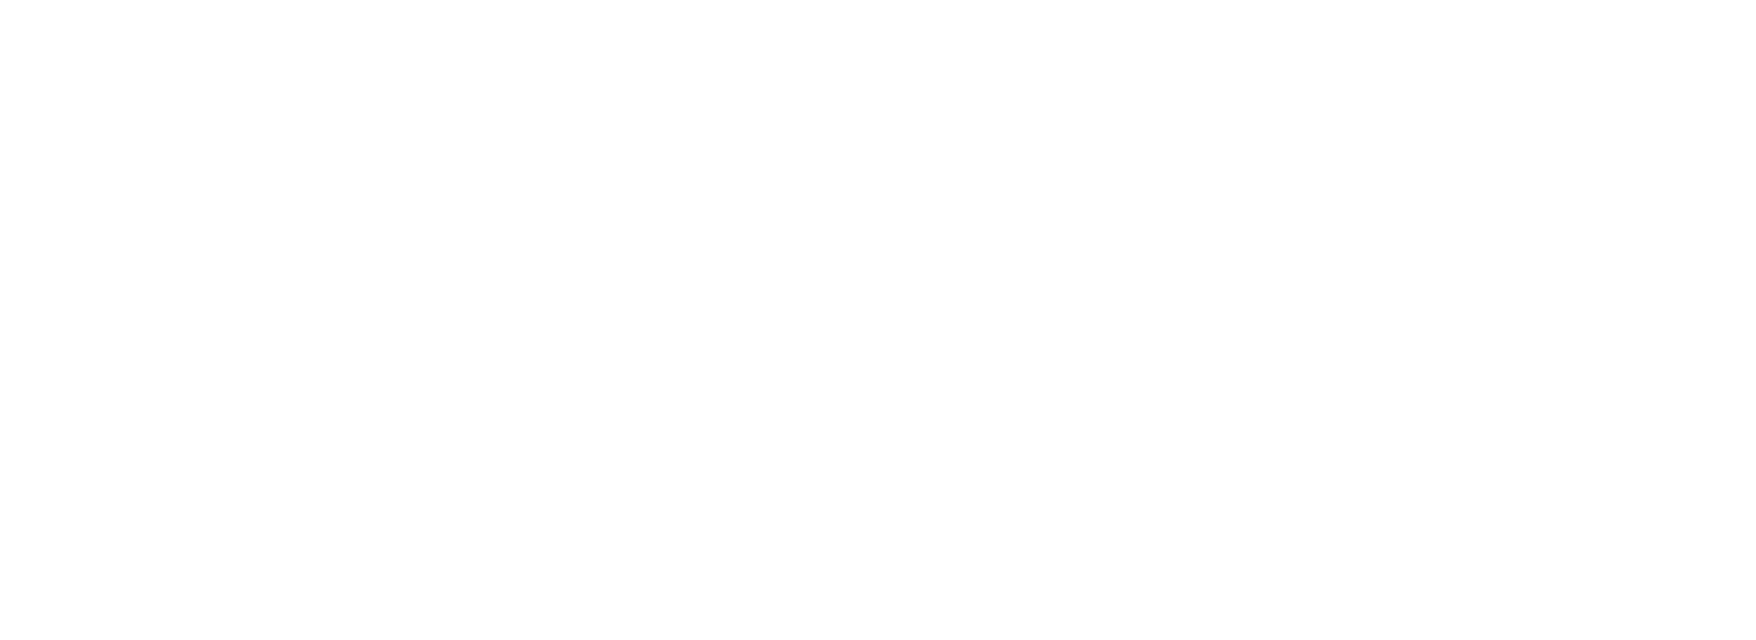 Essential insights into Latin American hospitals